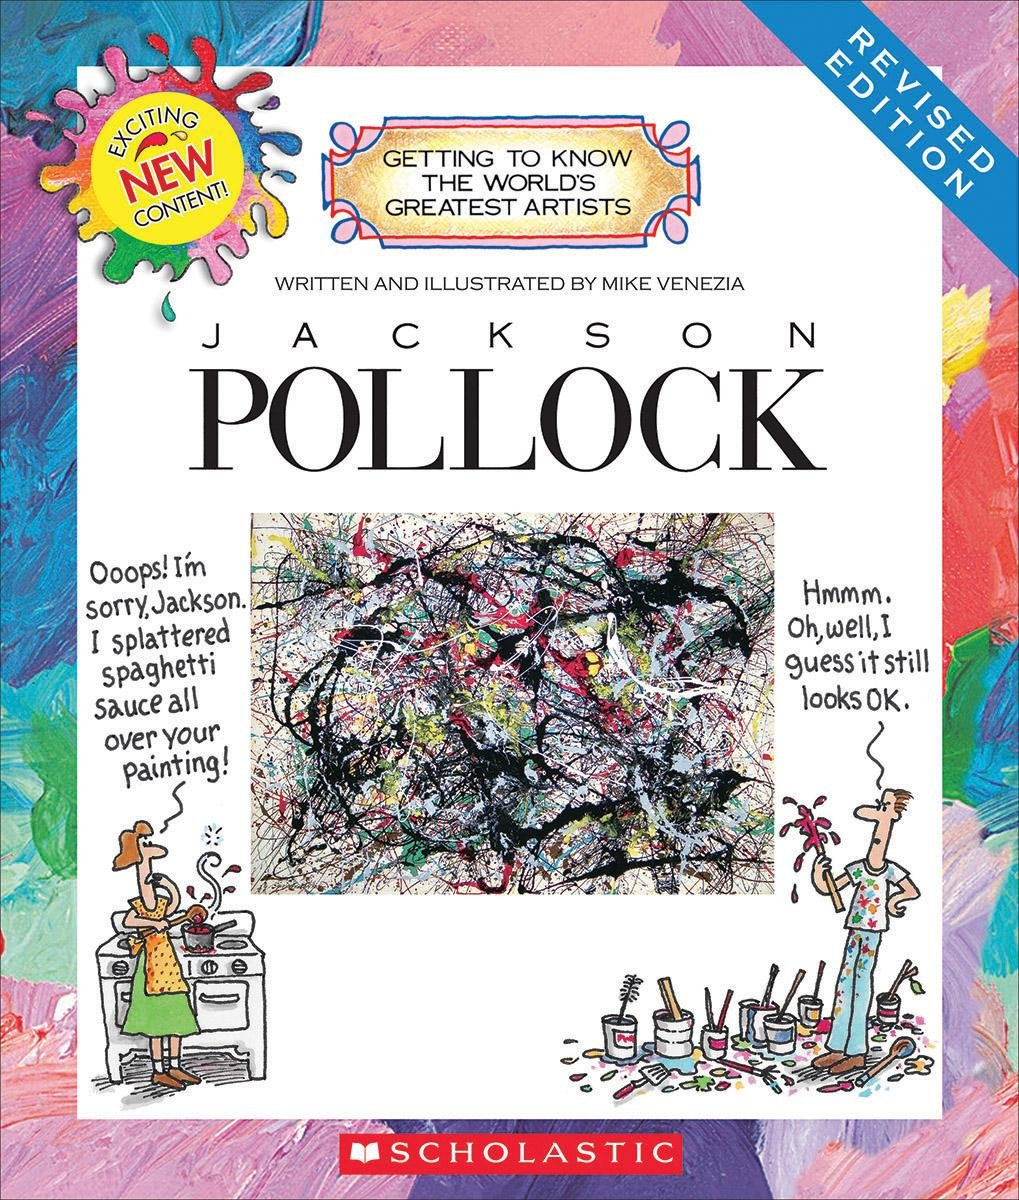 Jackson Pollock (Revised Edition) (Getting to Know the World's Greatest Artists) (Library Publishing)